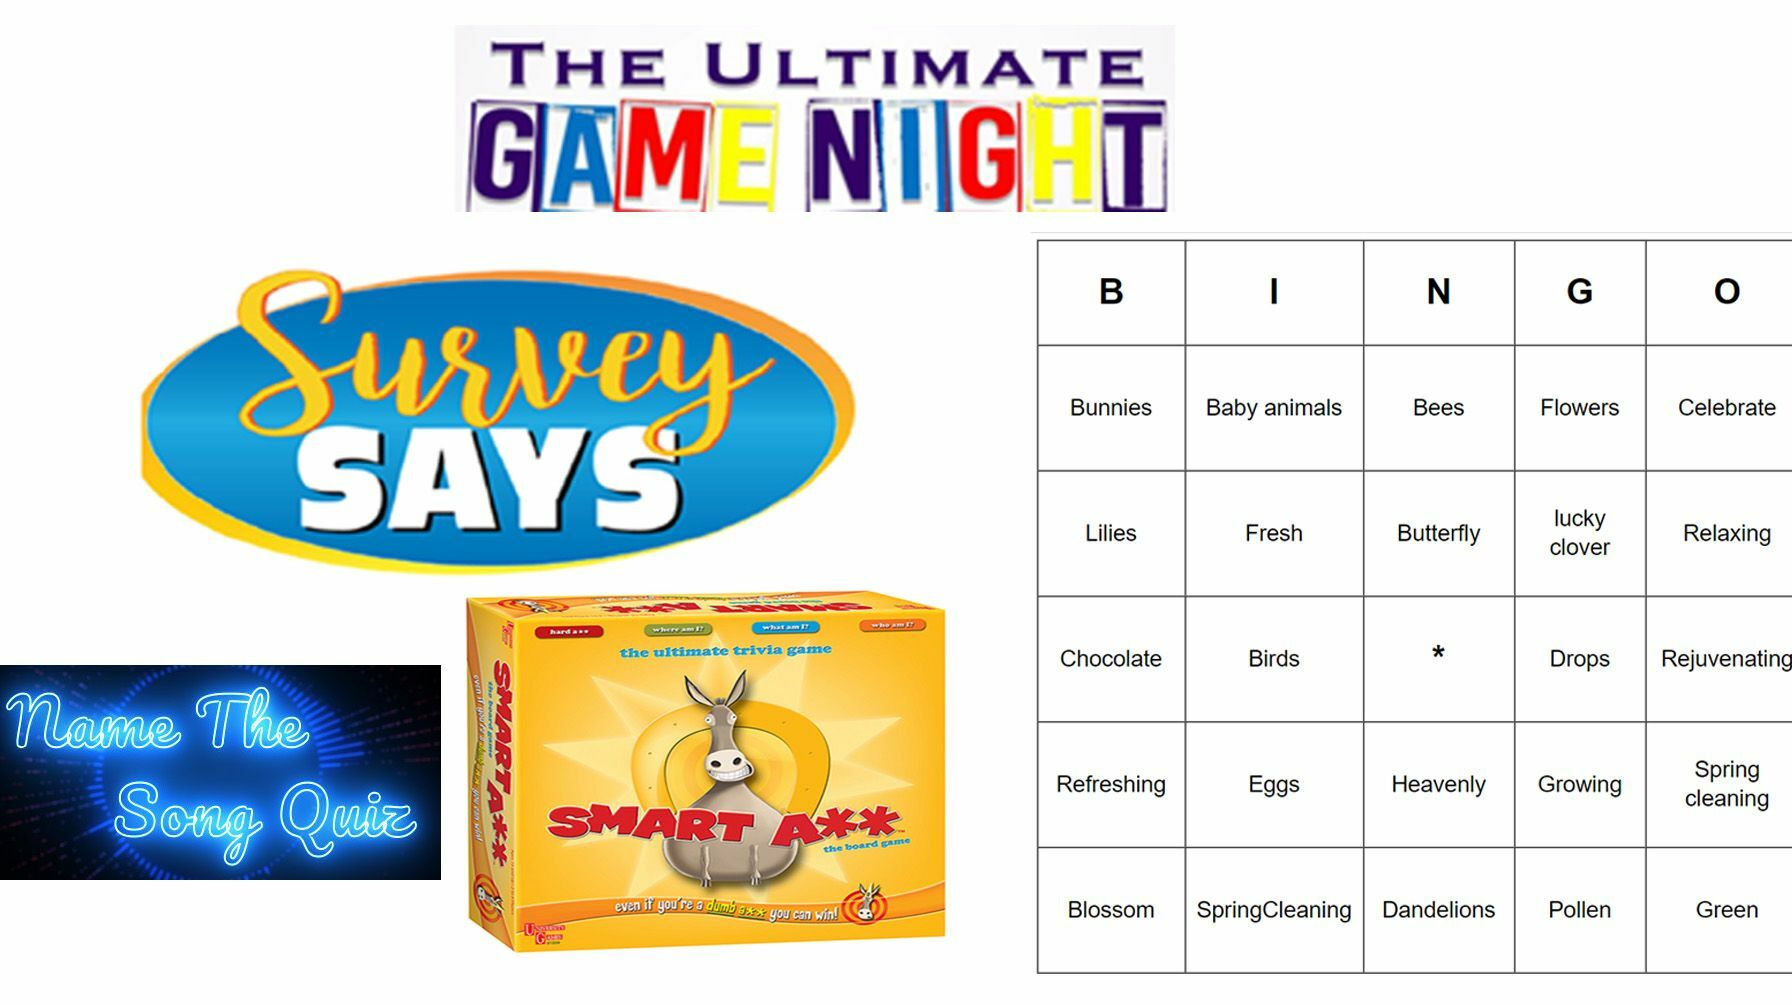 Ultimate Game Night (Virtual) - Bingo, Smart A**, Survey Says, Name the song